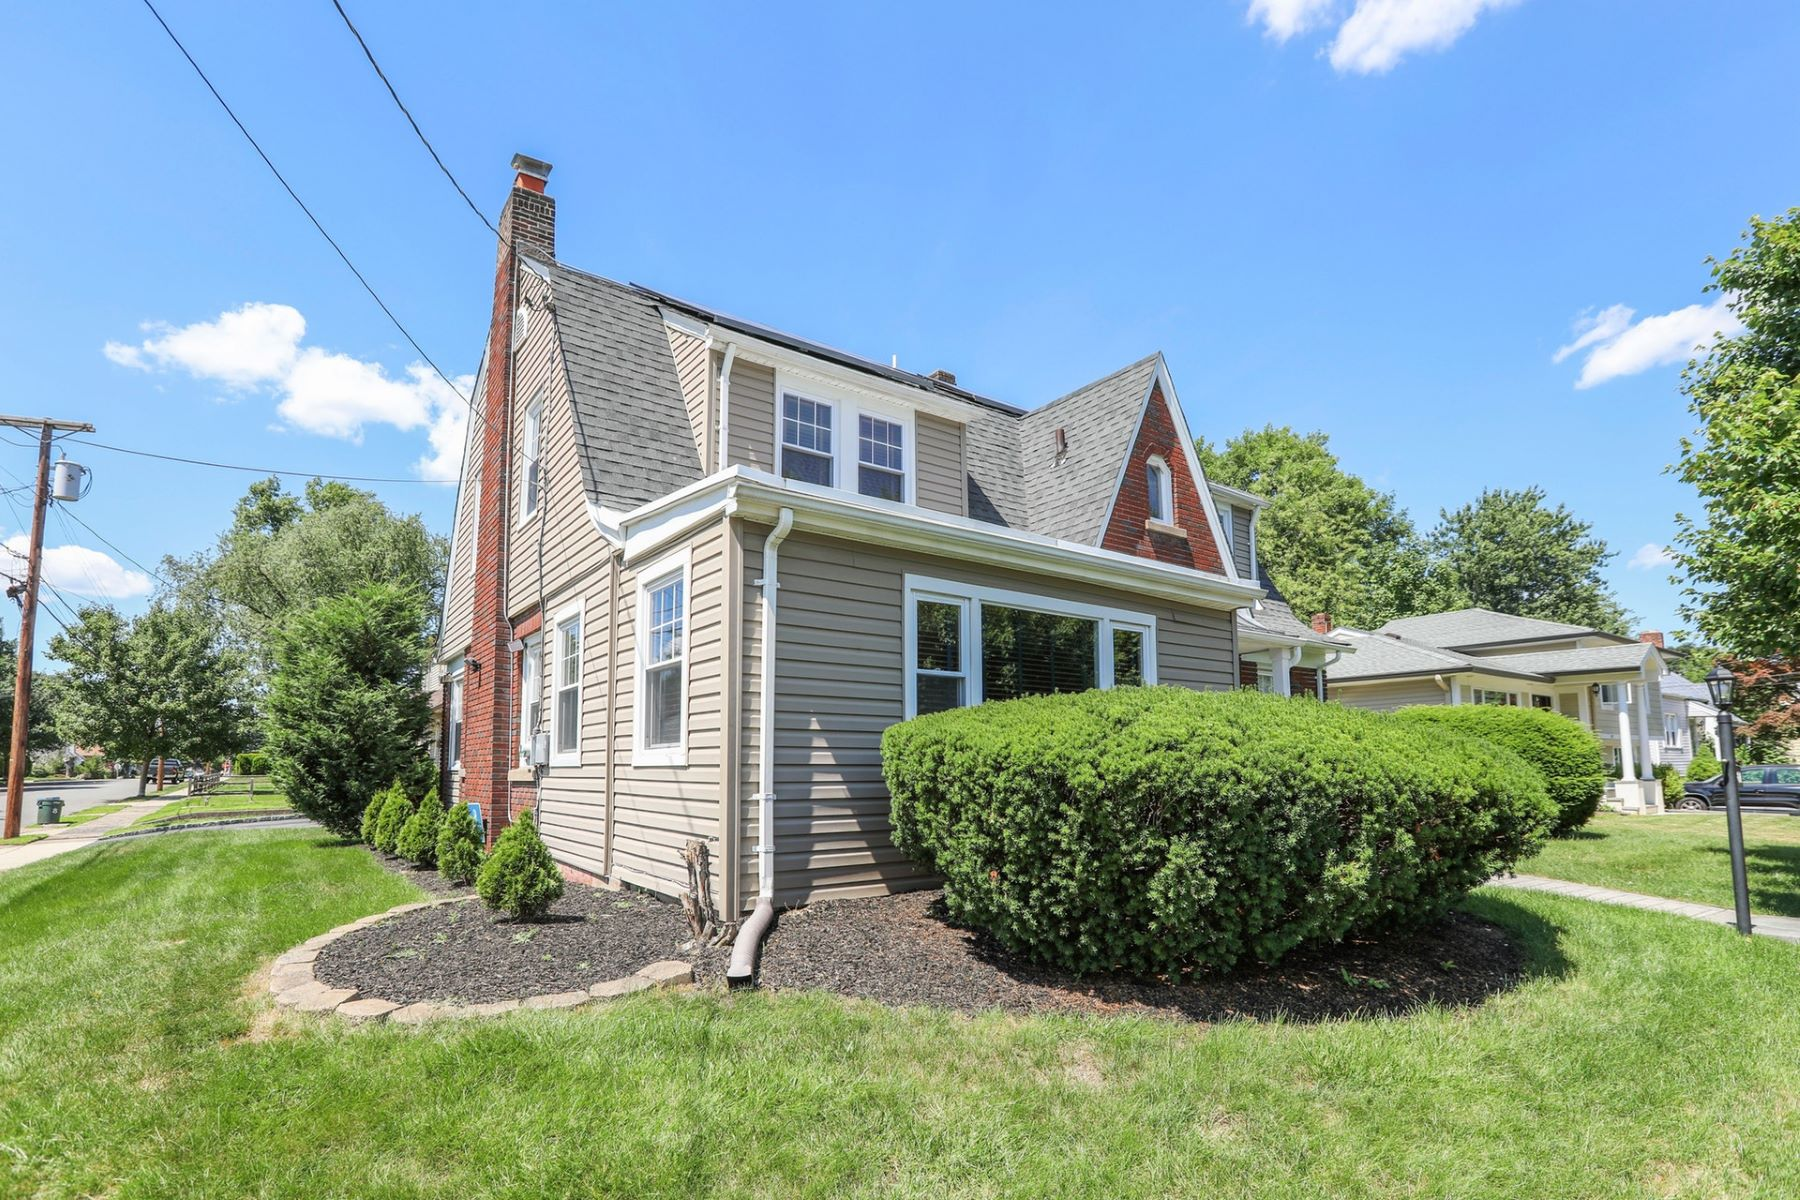 Additional photo for property listing at Welcome Home! 1-01 Morlot Ave Fair Lawn, New Jersey 07410 United States